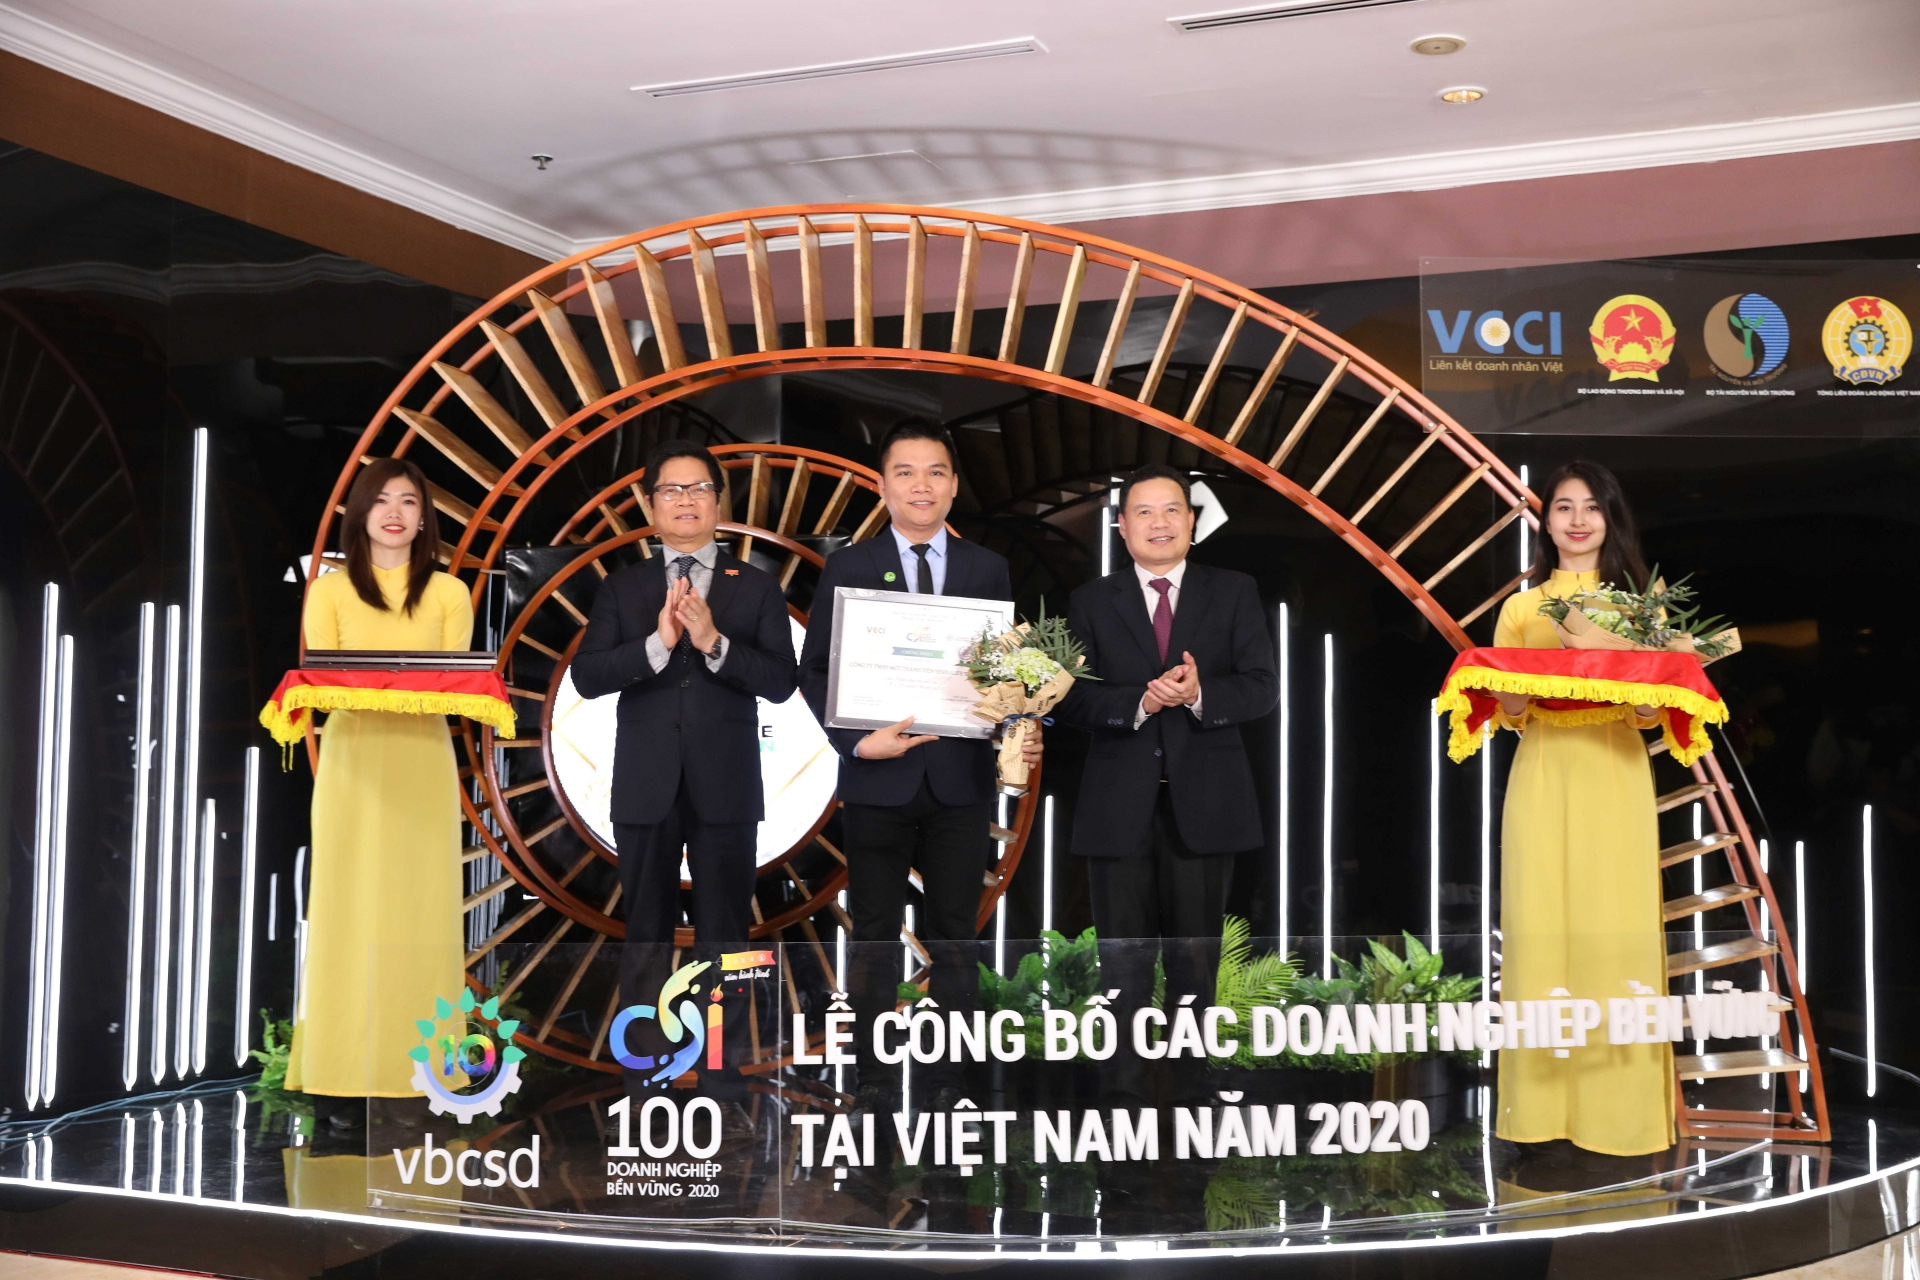 herbalife vietnam recognised among most sustainable companies